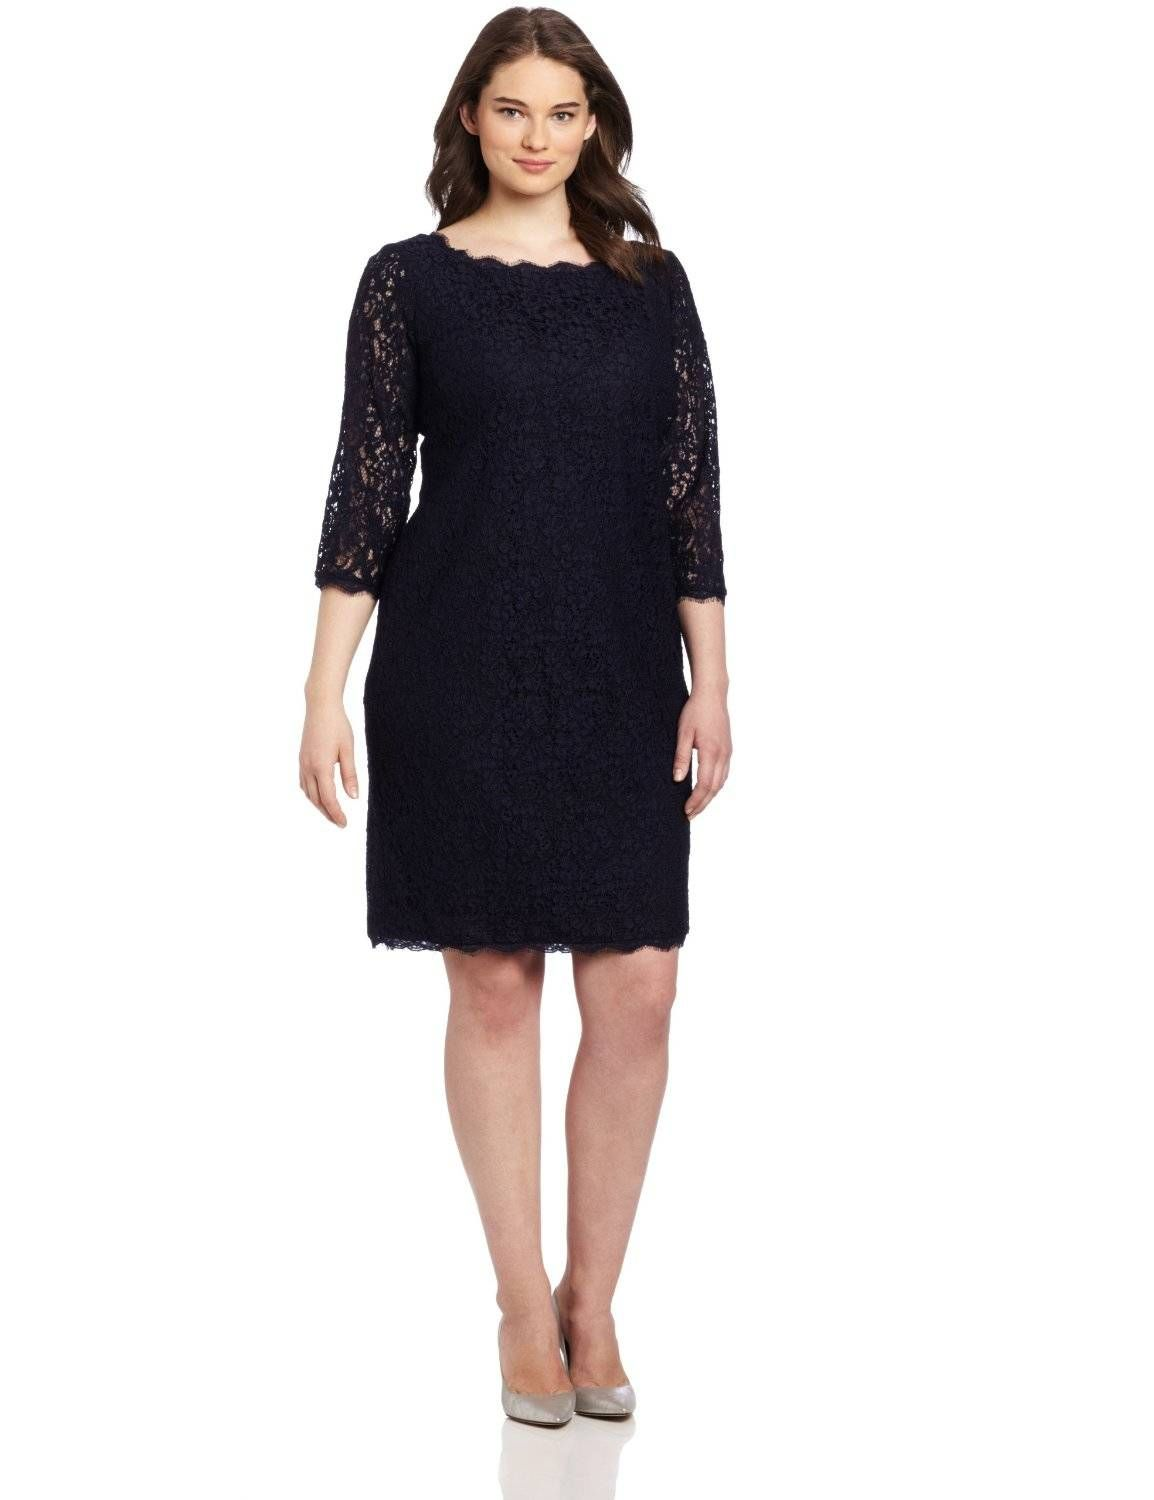 For This Seasons Holiday Parties You Can Find 3 4 Sleeve Plus Size Cocktail Dresses For All Sizes Long Sleeve Lace Dress Lace Dress Plus Size Cocktail Dresses [ 1500 x 1154 Pixel ]